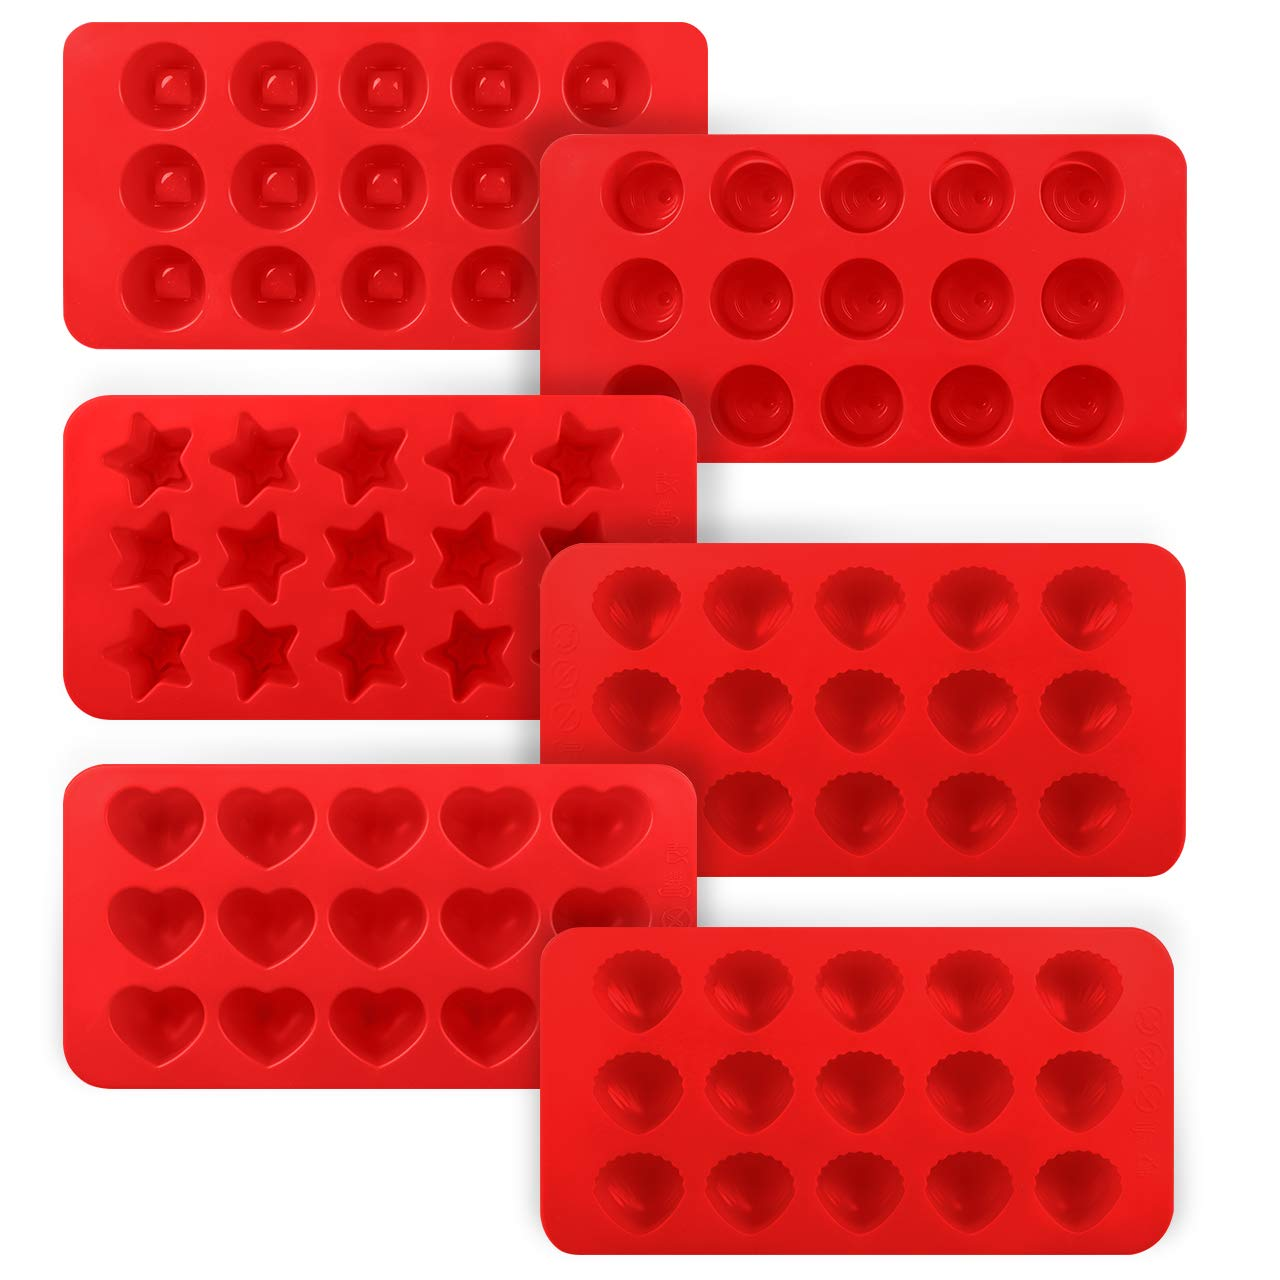 Kootek 6 Pieces Silicone Chocolate Molds, Reusable 90 Cavity Candy Mold - BPA Free Baking Supplies Tools for Making Chocolates Hard Candies Gummy Gumdrop Jelly Desserts Ice Cube Candles Soap Pudding KD339